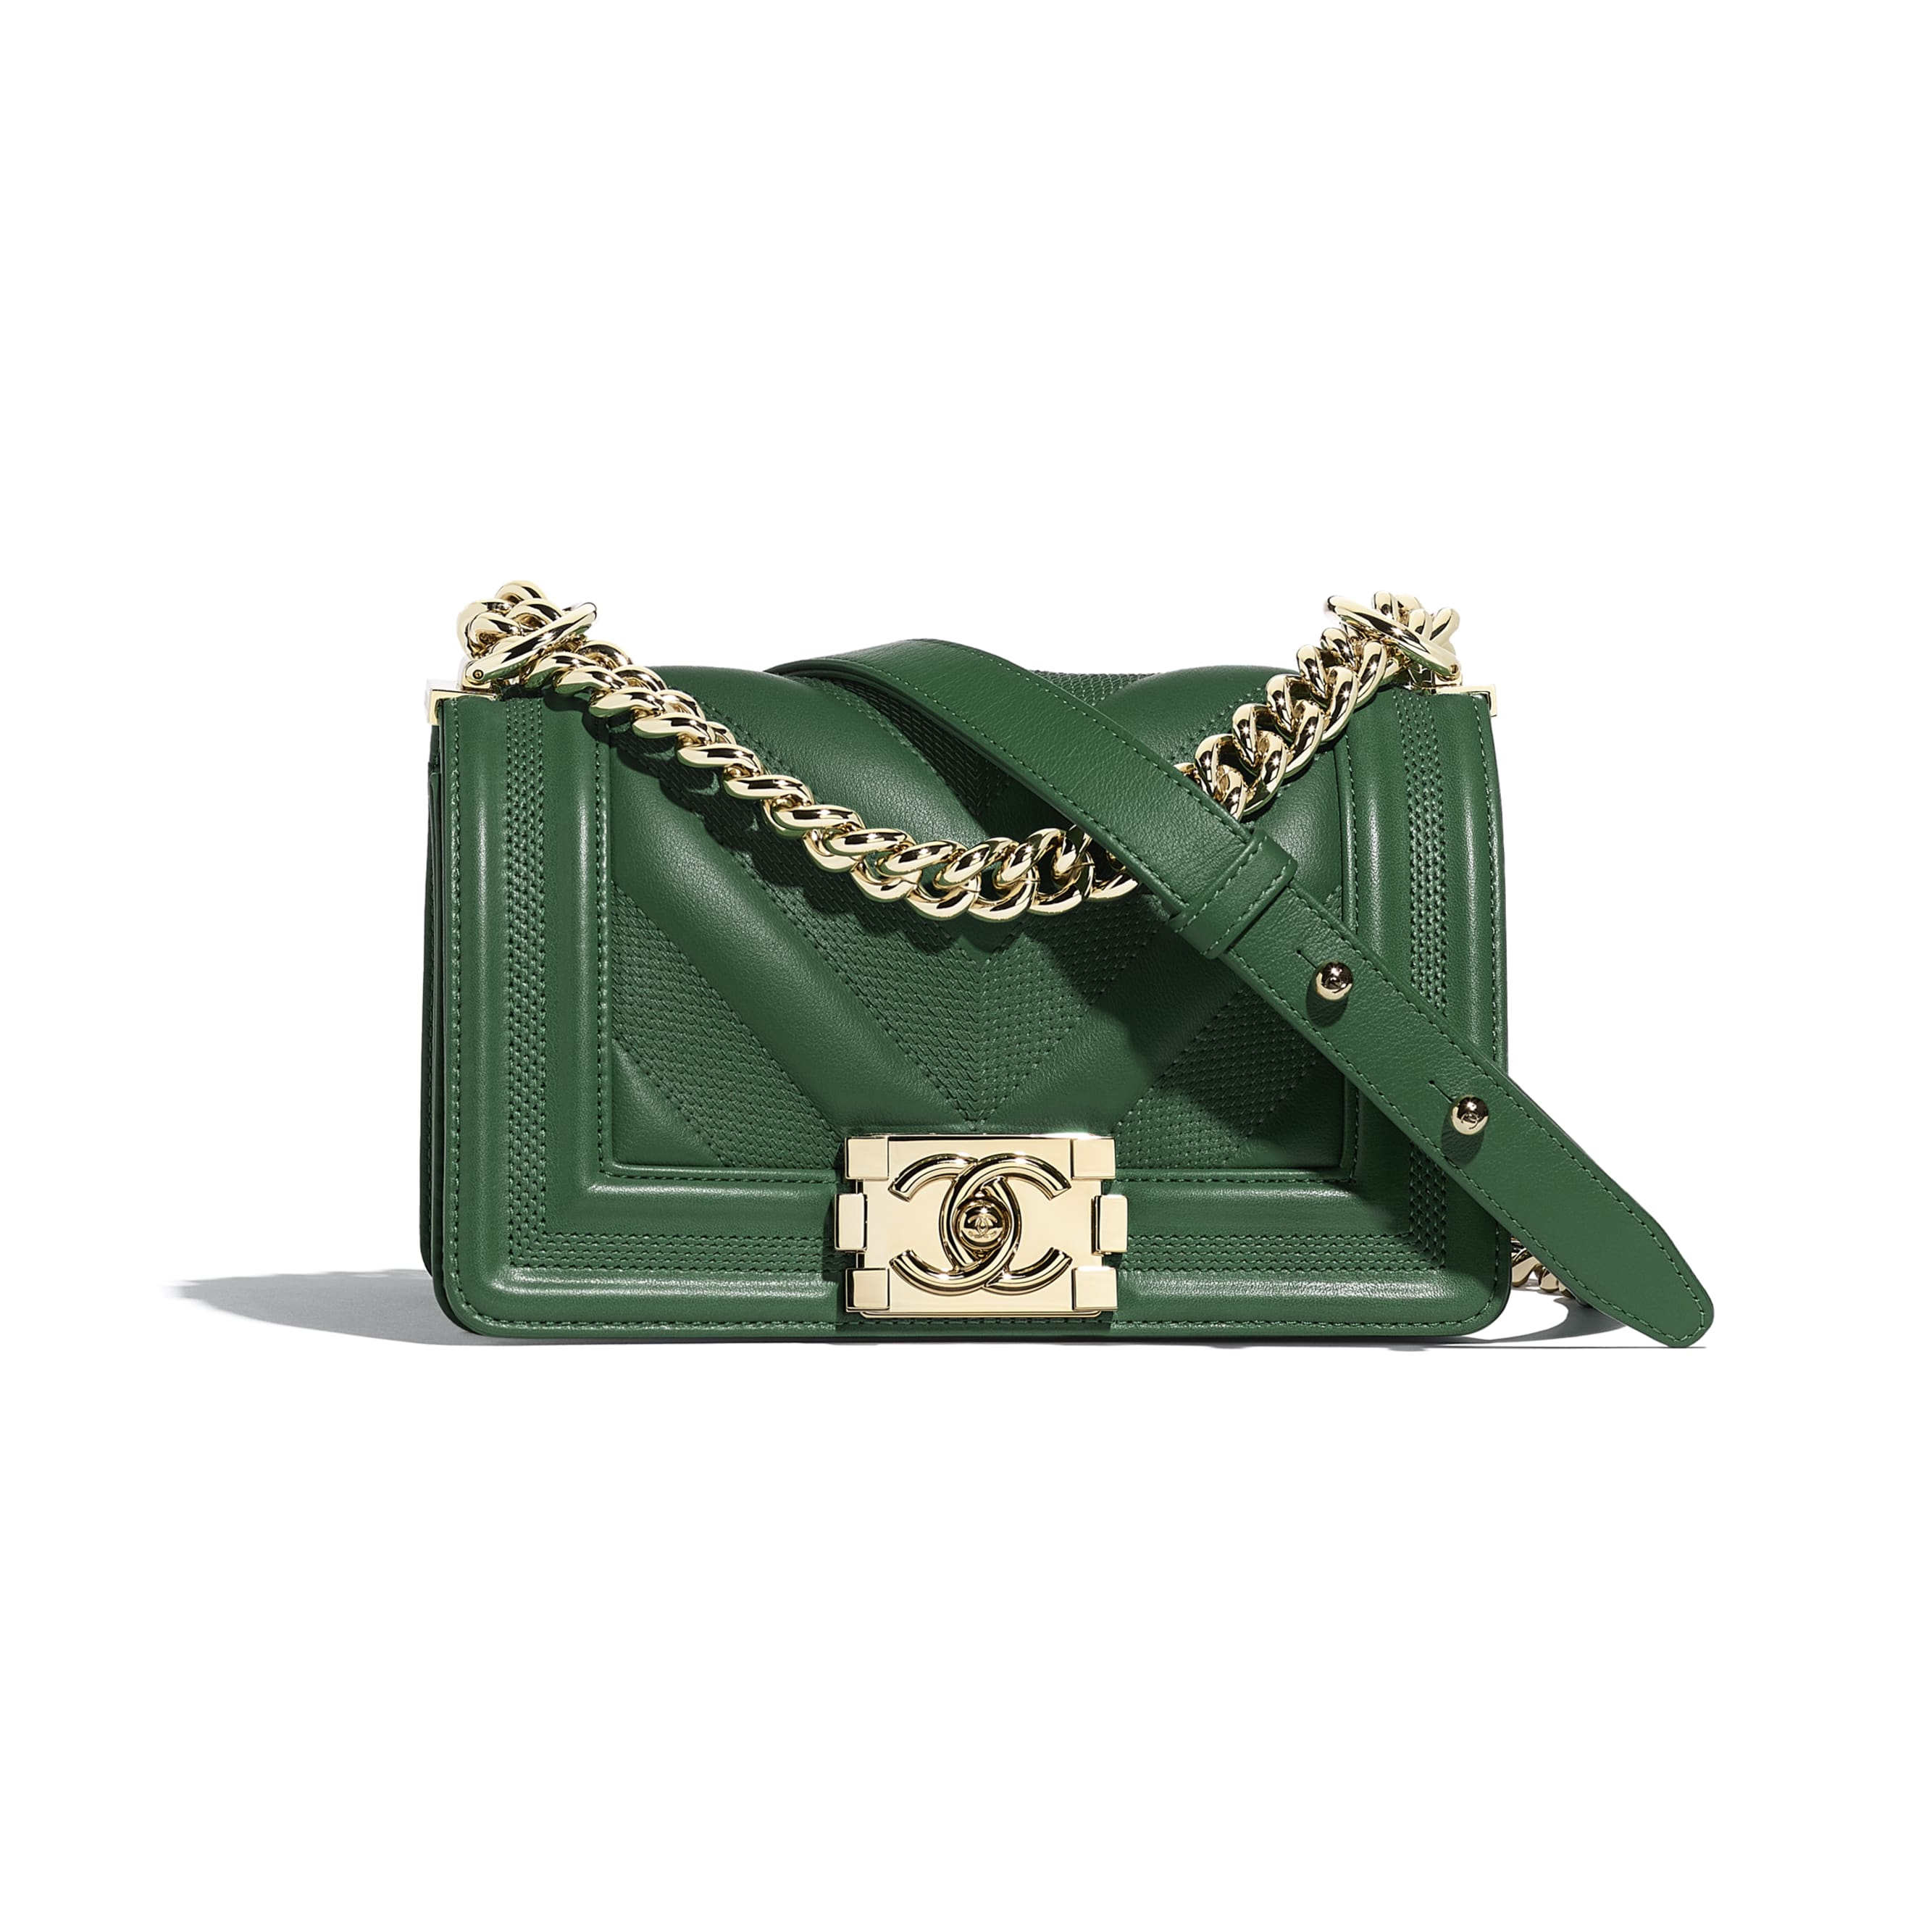 Small BOY CHANEL Handbag - Green - Calfskin & Gold-Tone Metal - Default view - see standard sized version